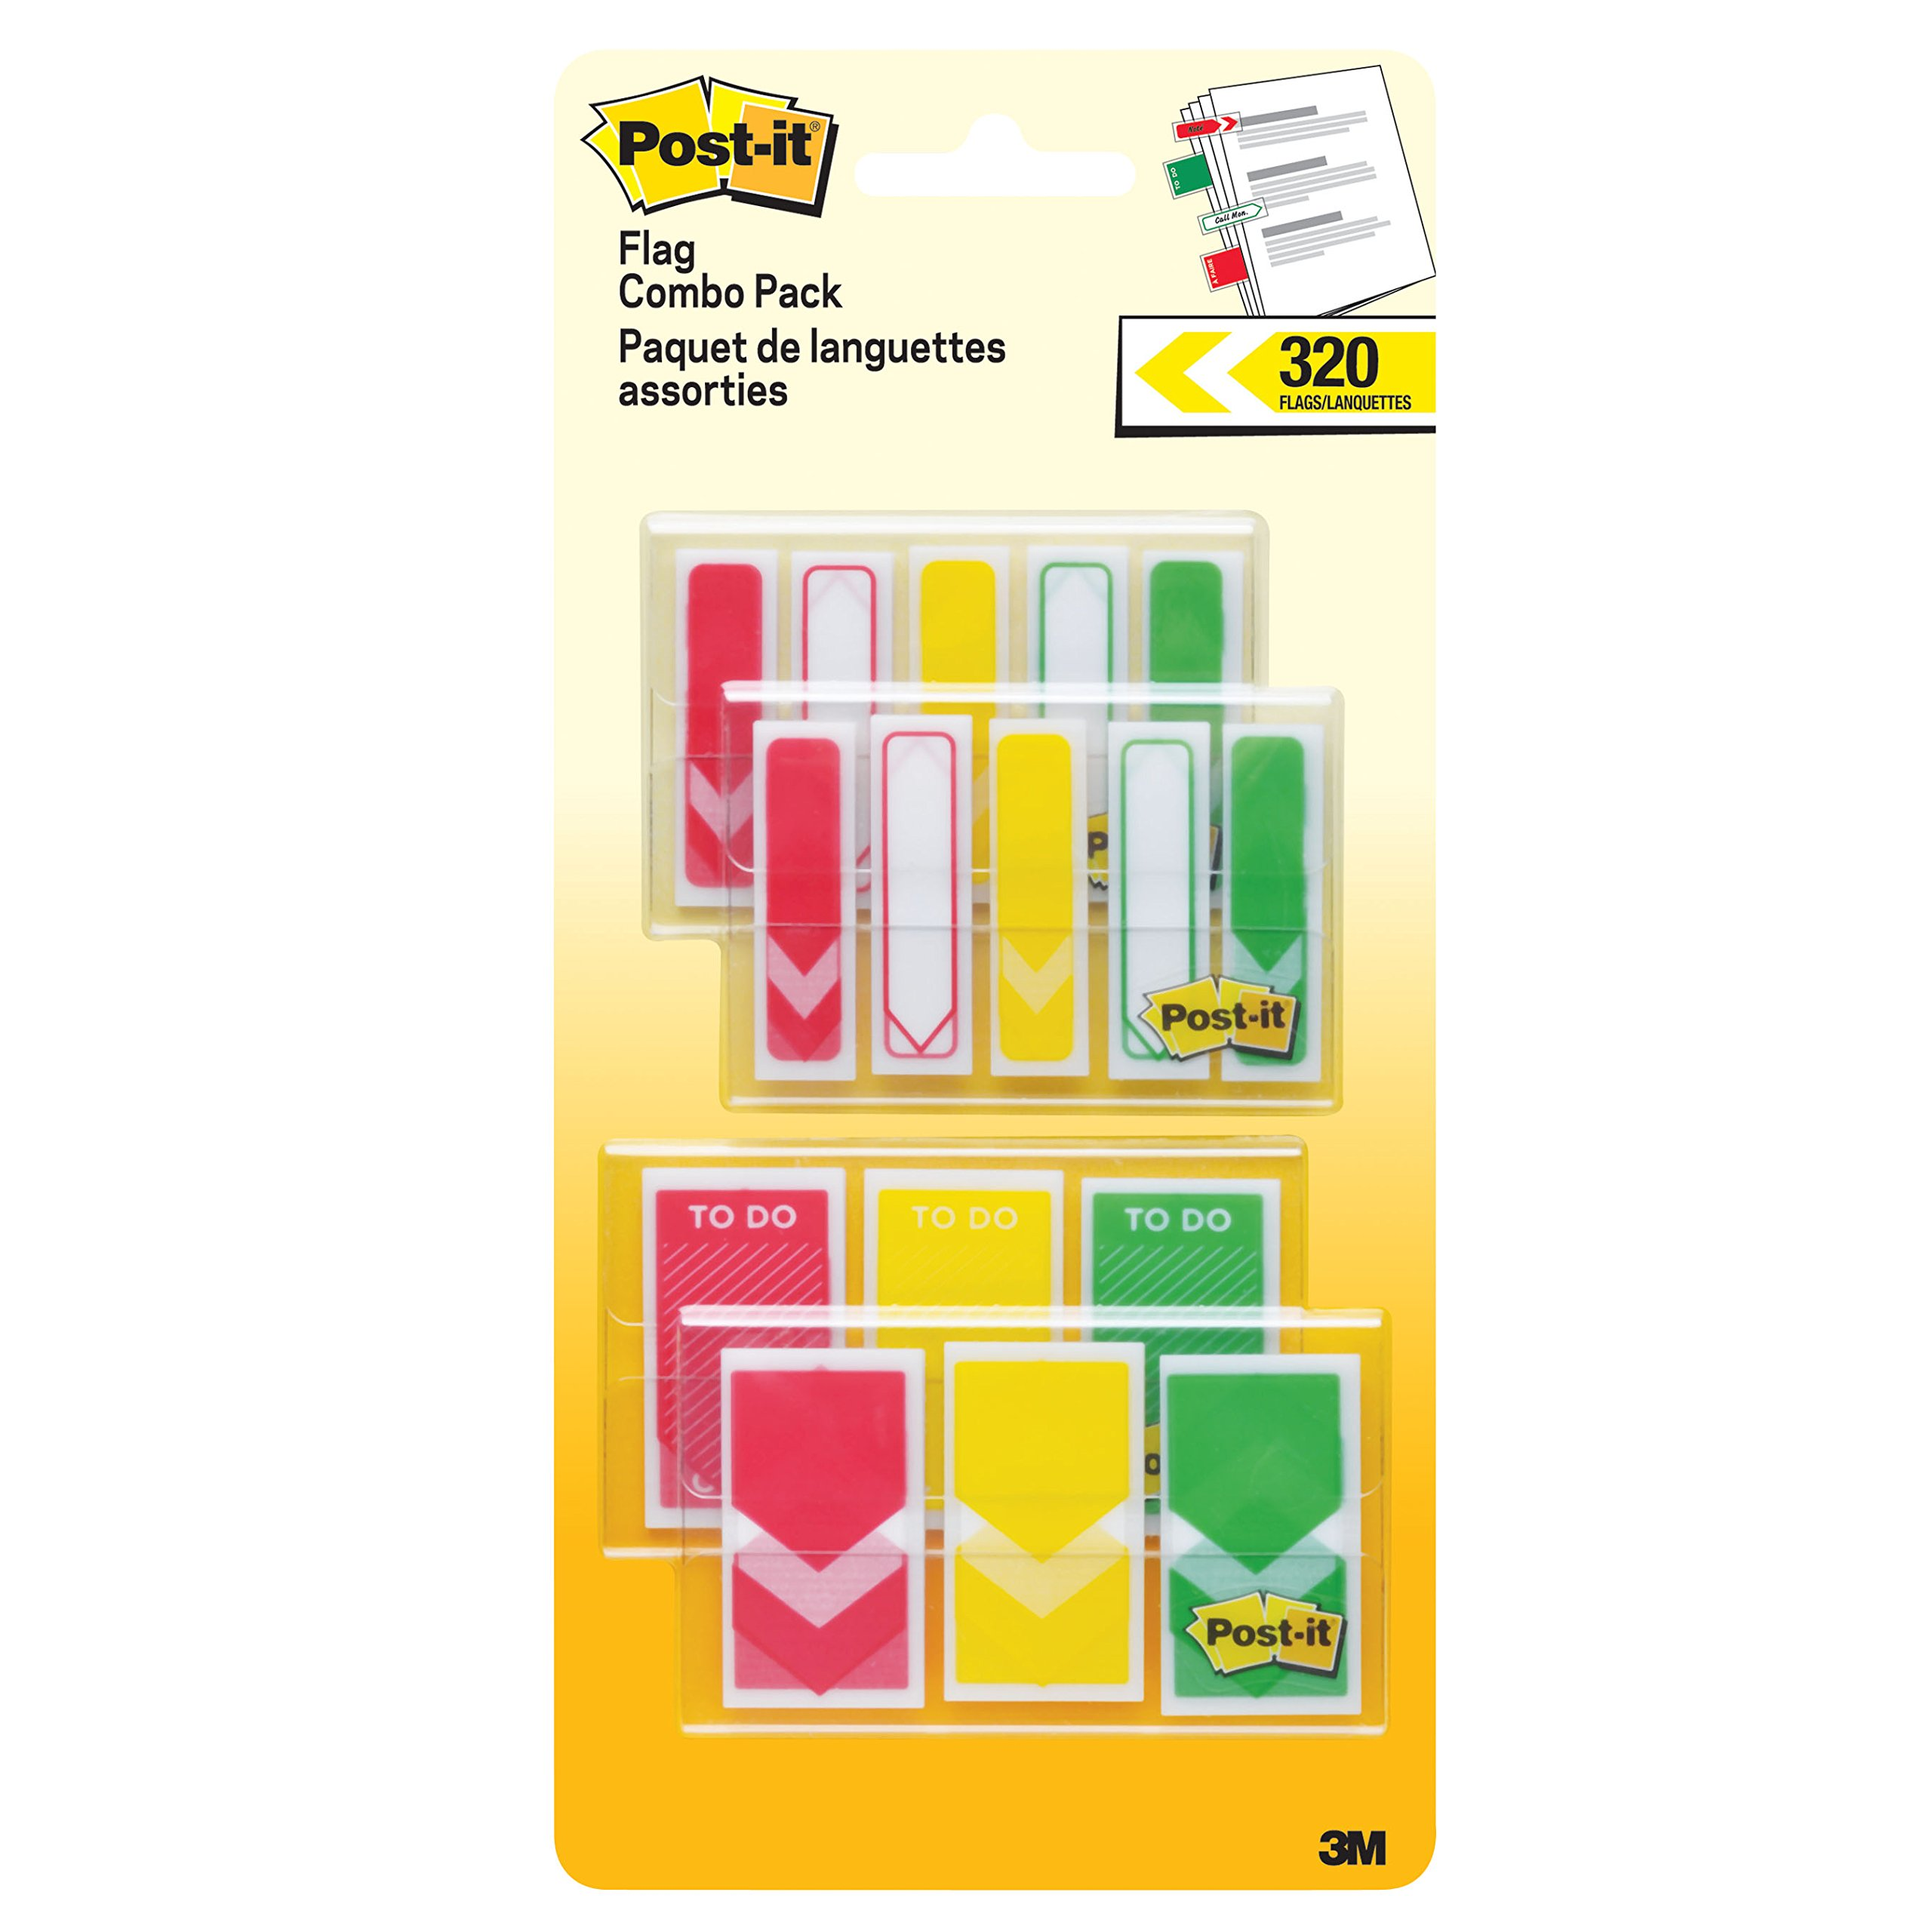 "Post-it Prioritization Flags Value Pack,""Arrow"", Stick Securely and Remove Cleanly Without Damaging Documents, Red, Yellow, Green.94 in. and .47 in. Wide, 320 Flags/Pack, (682-RYG-VA)"